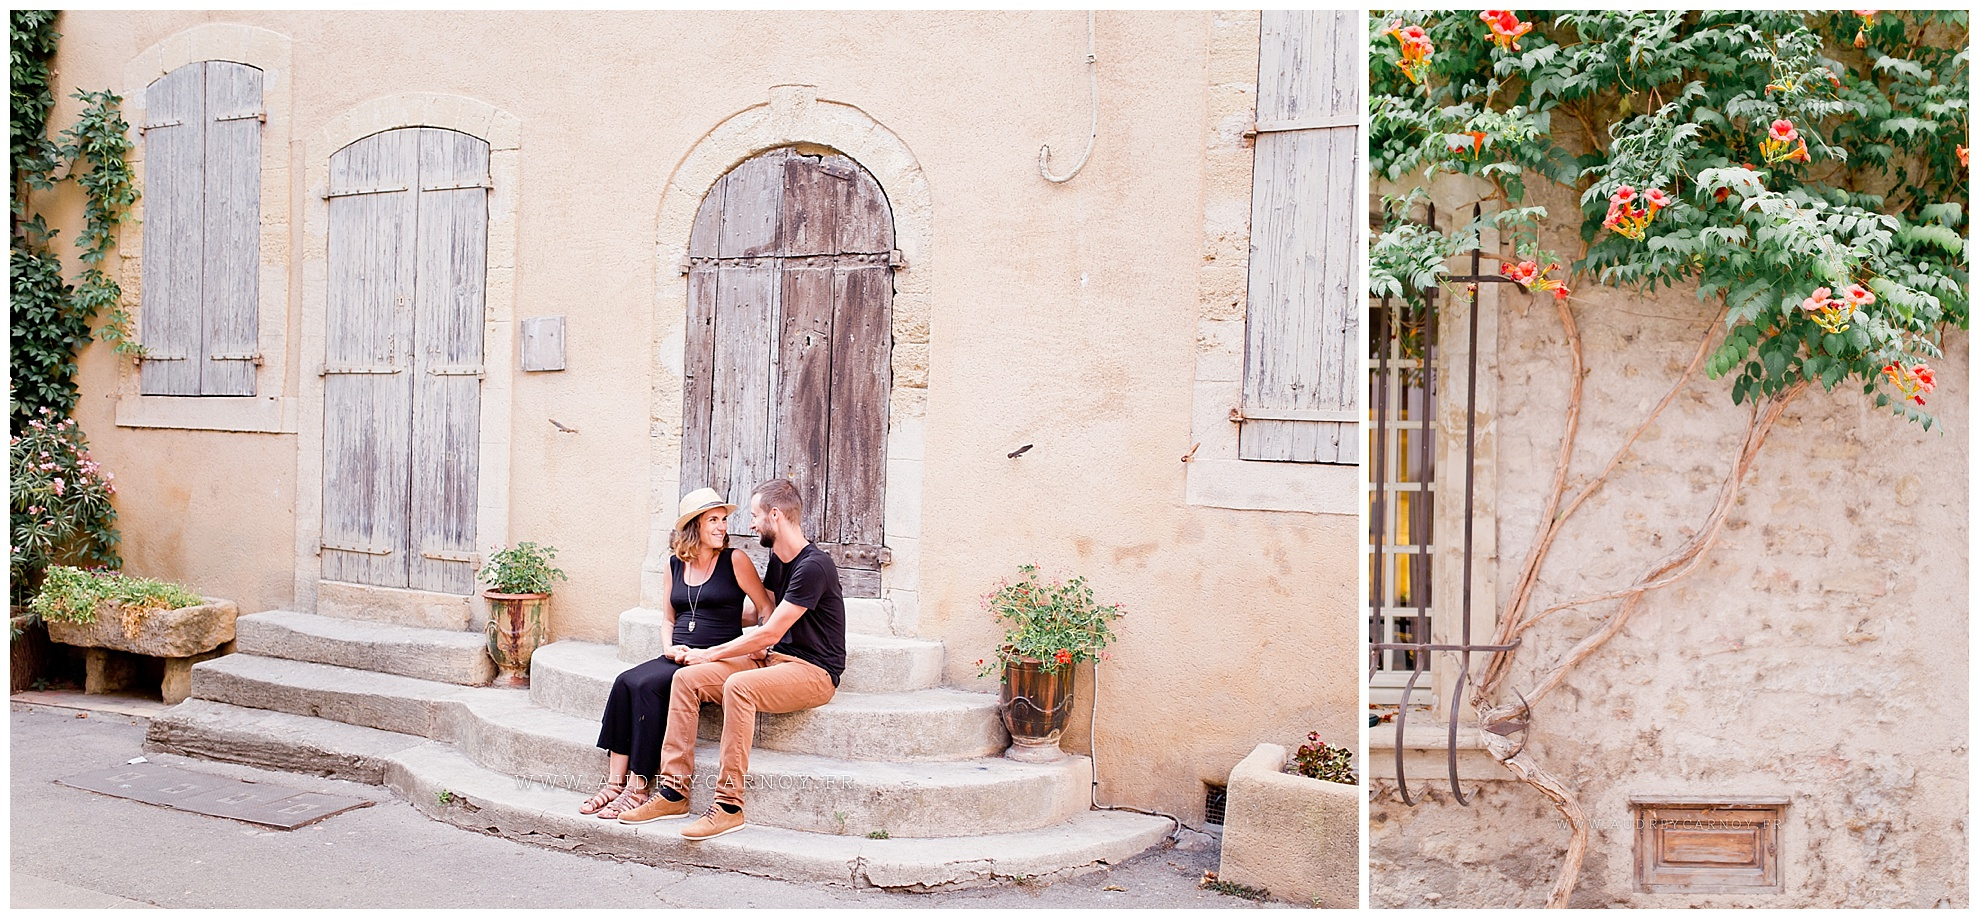 Seance grossesse Provence - Pertuis | Audrey & Jerome 10